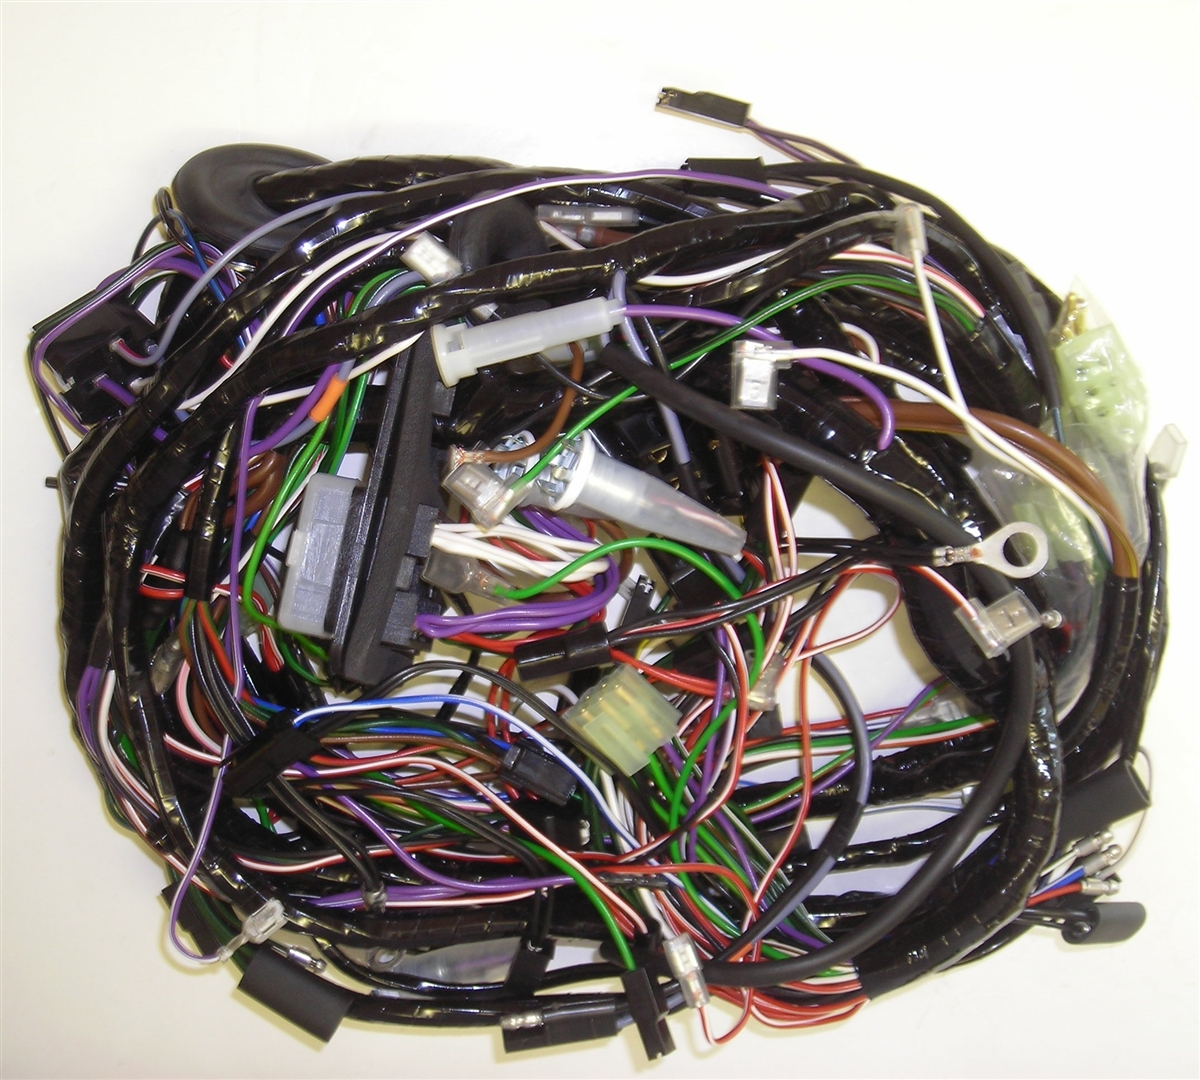 1531(3) 2?1443618008 spitfire1500 main wiring harness 73 triumph spitfire 1500 wiring harness at readyjetset.co